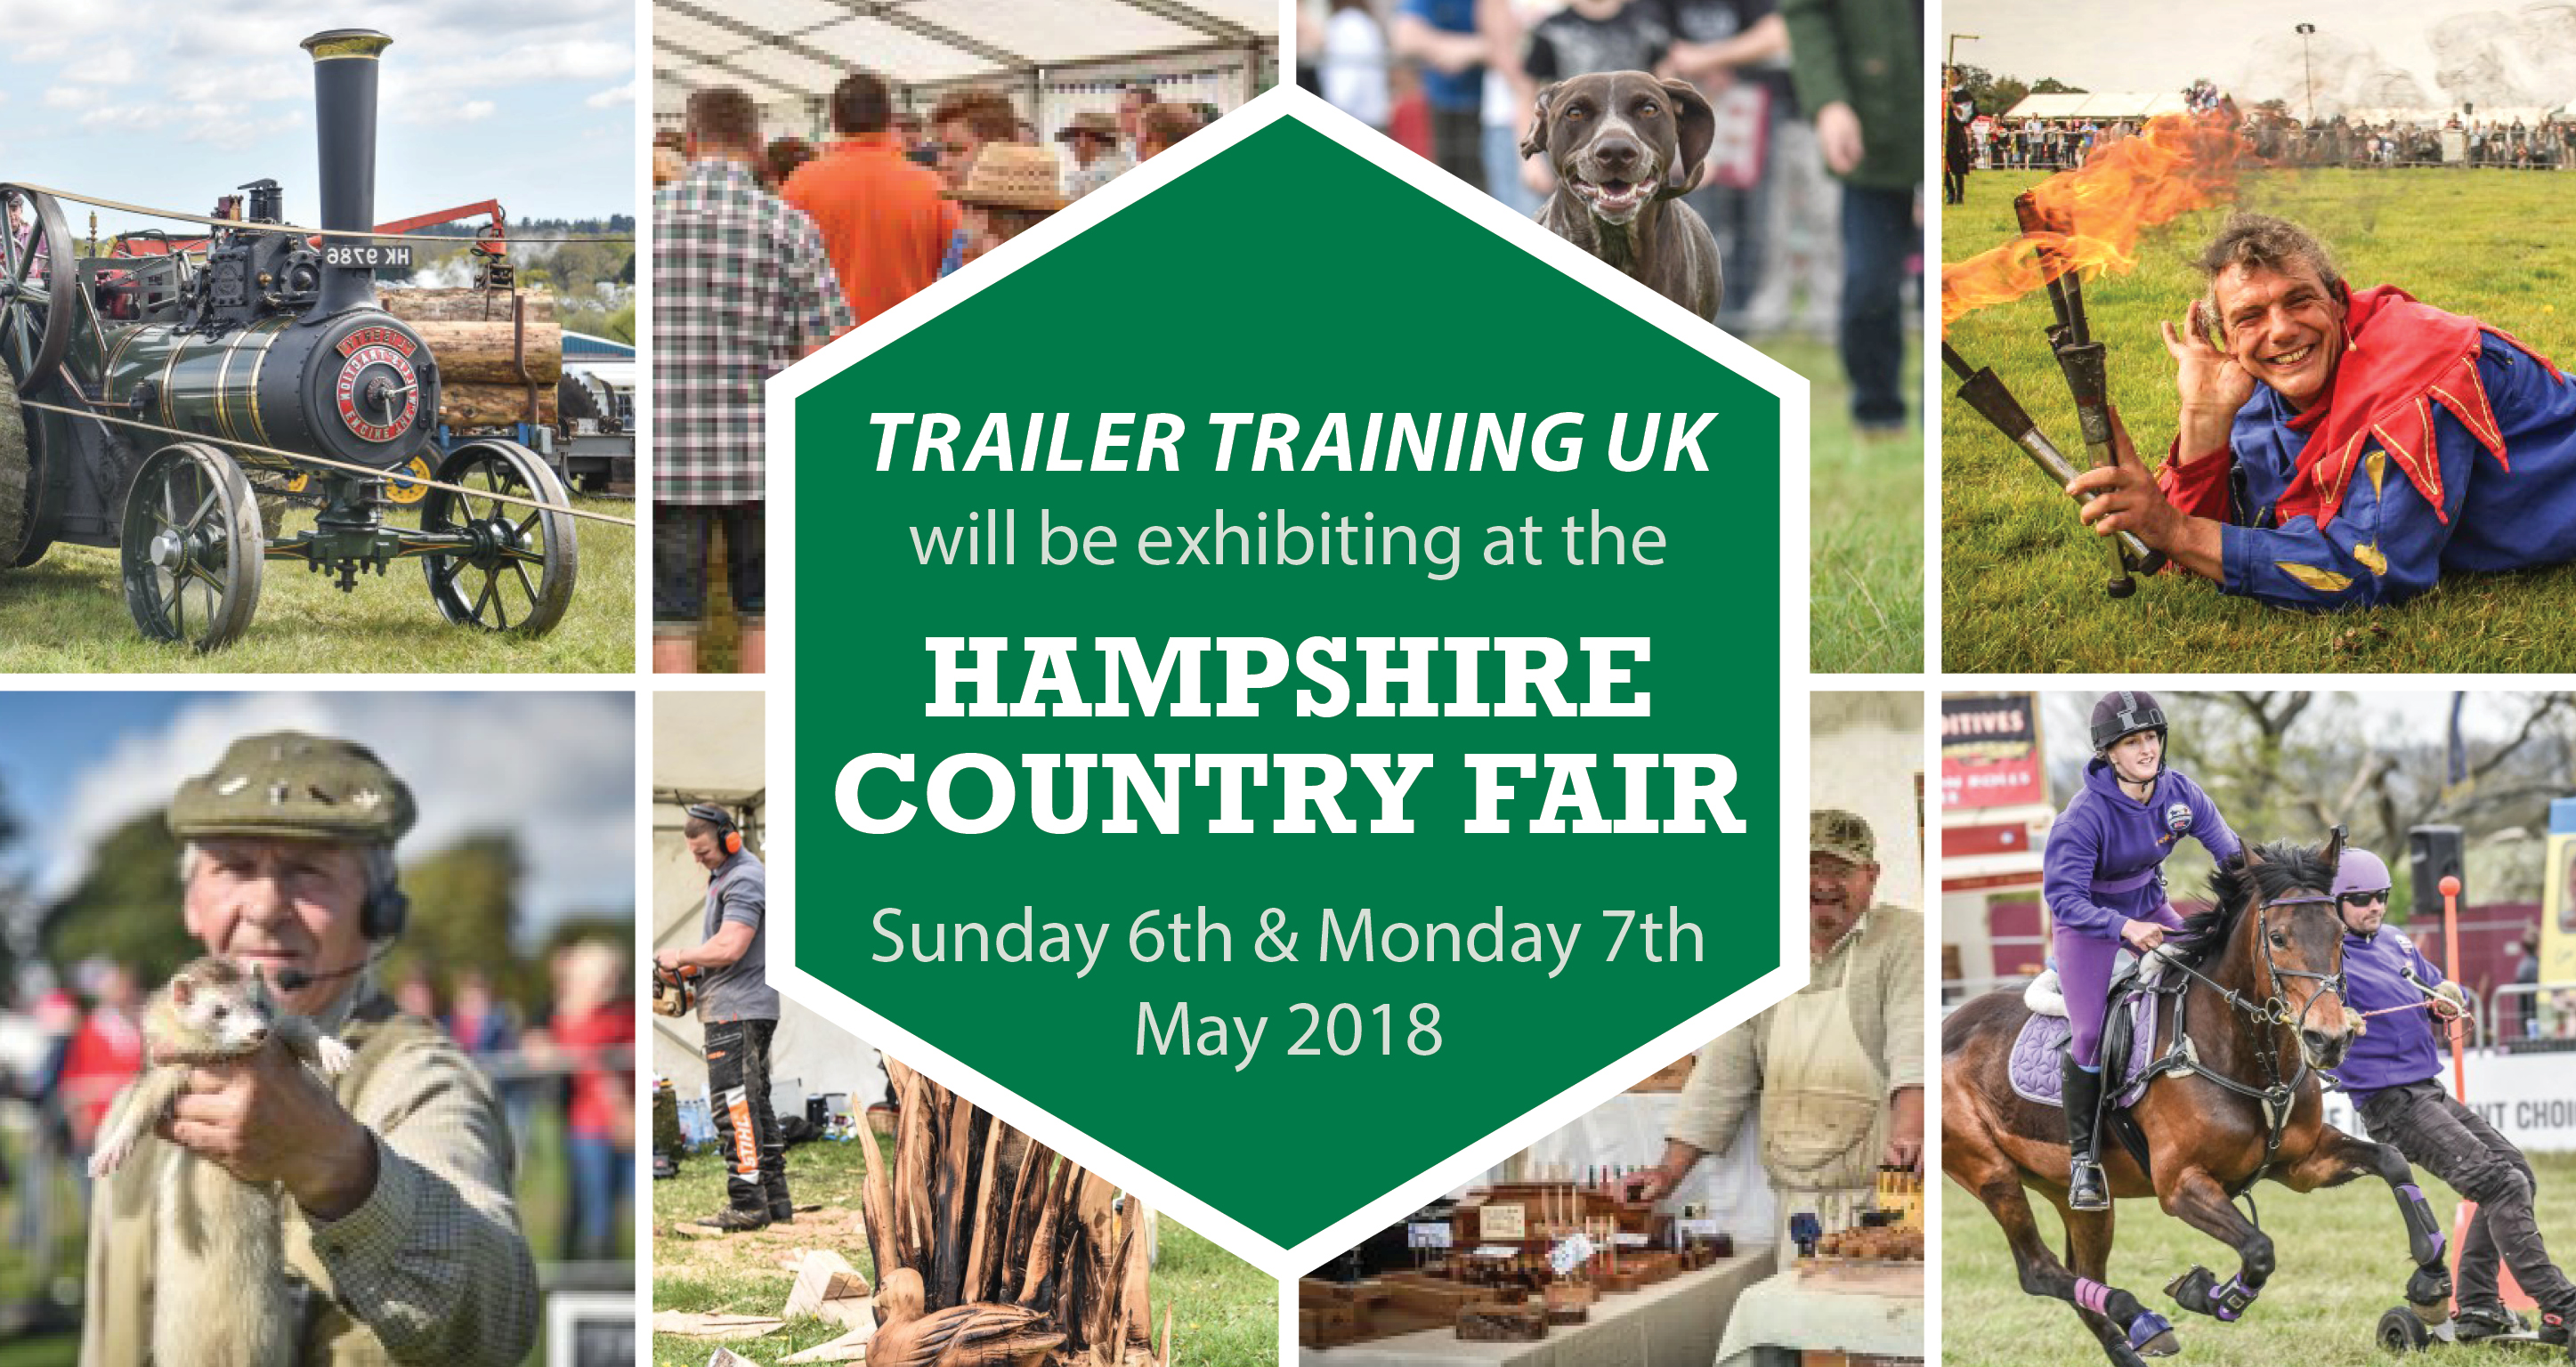 Trailer Training UK will be exhibiting at the Hampshire Country Fair 2018